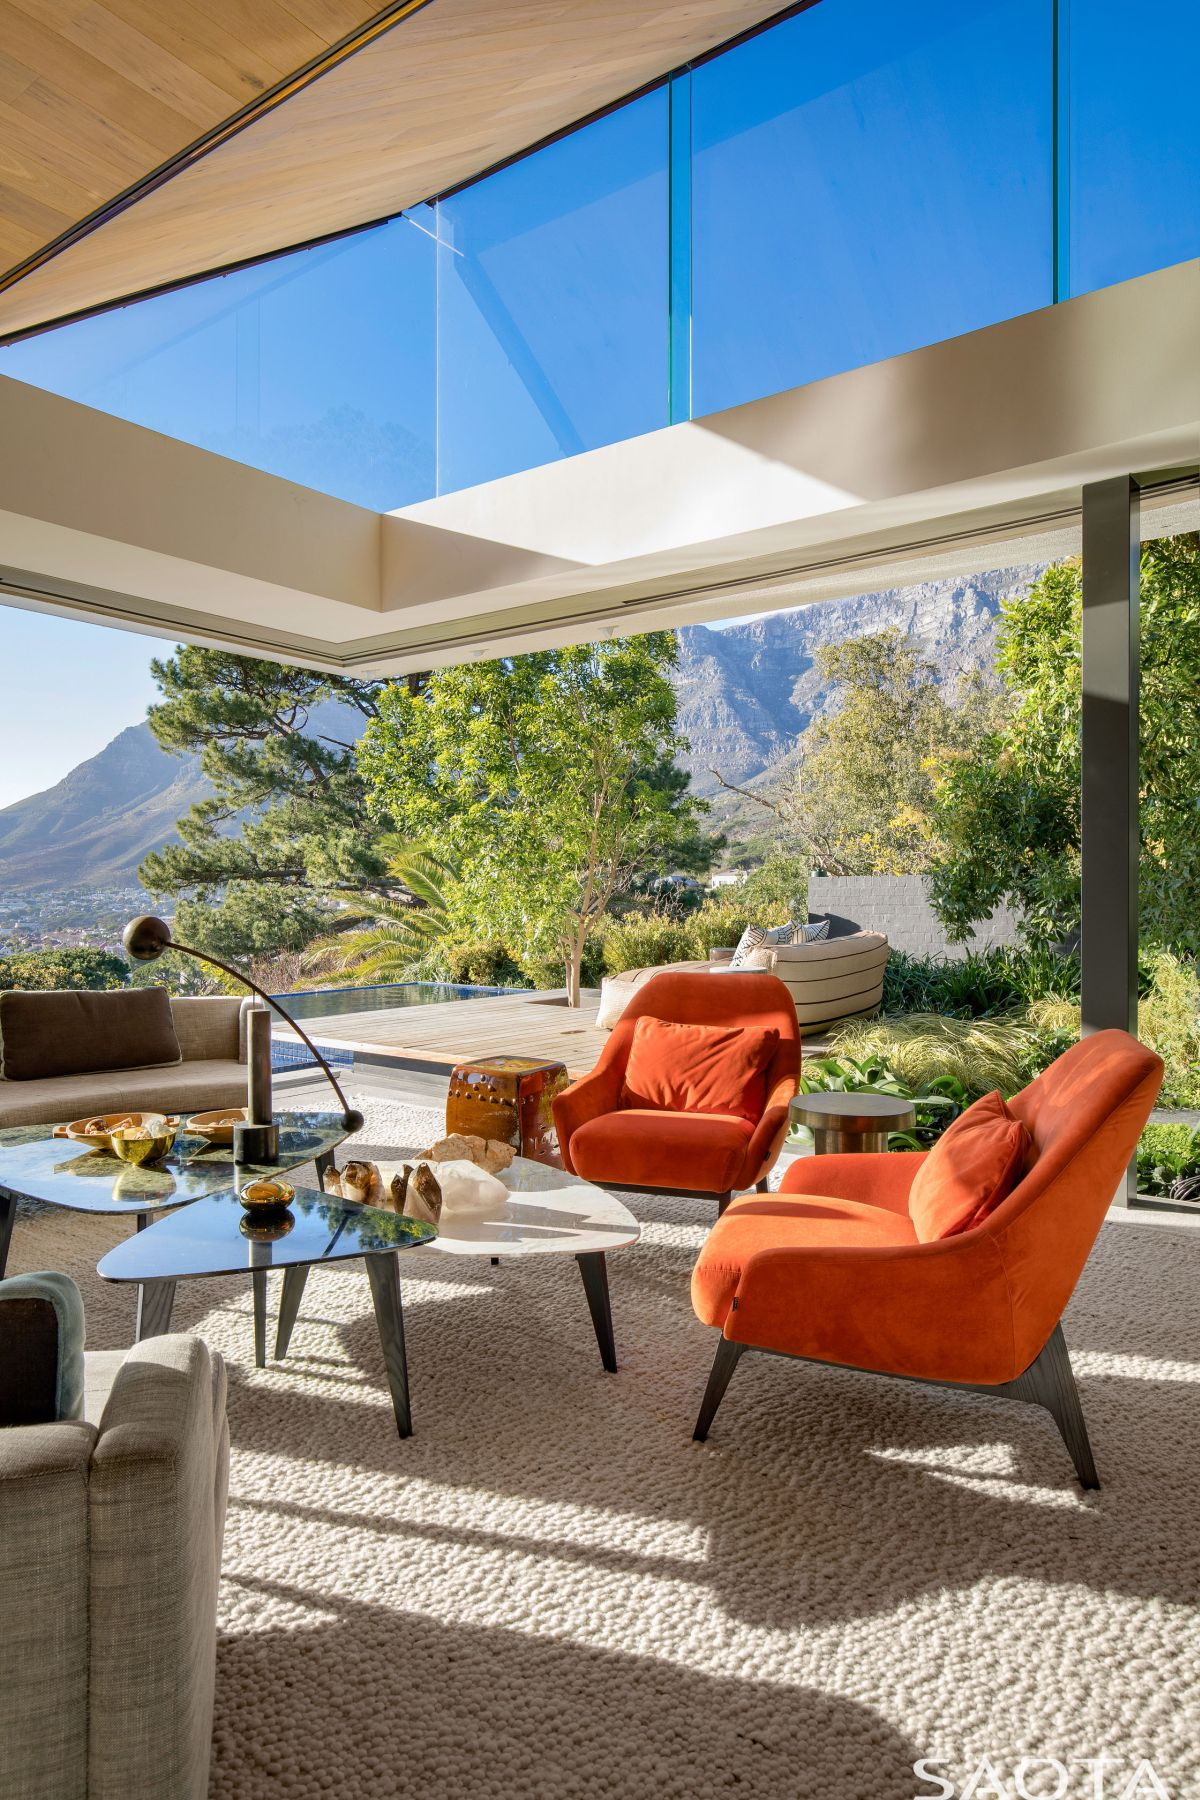 The lounge area is framed by seamless, panoramic views and features two eye-catching and comfy armchairs